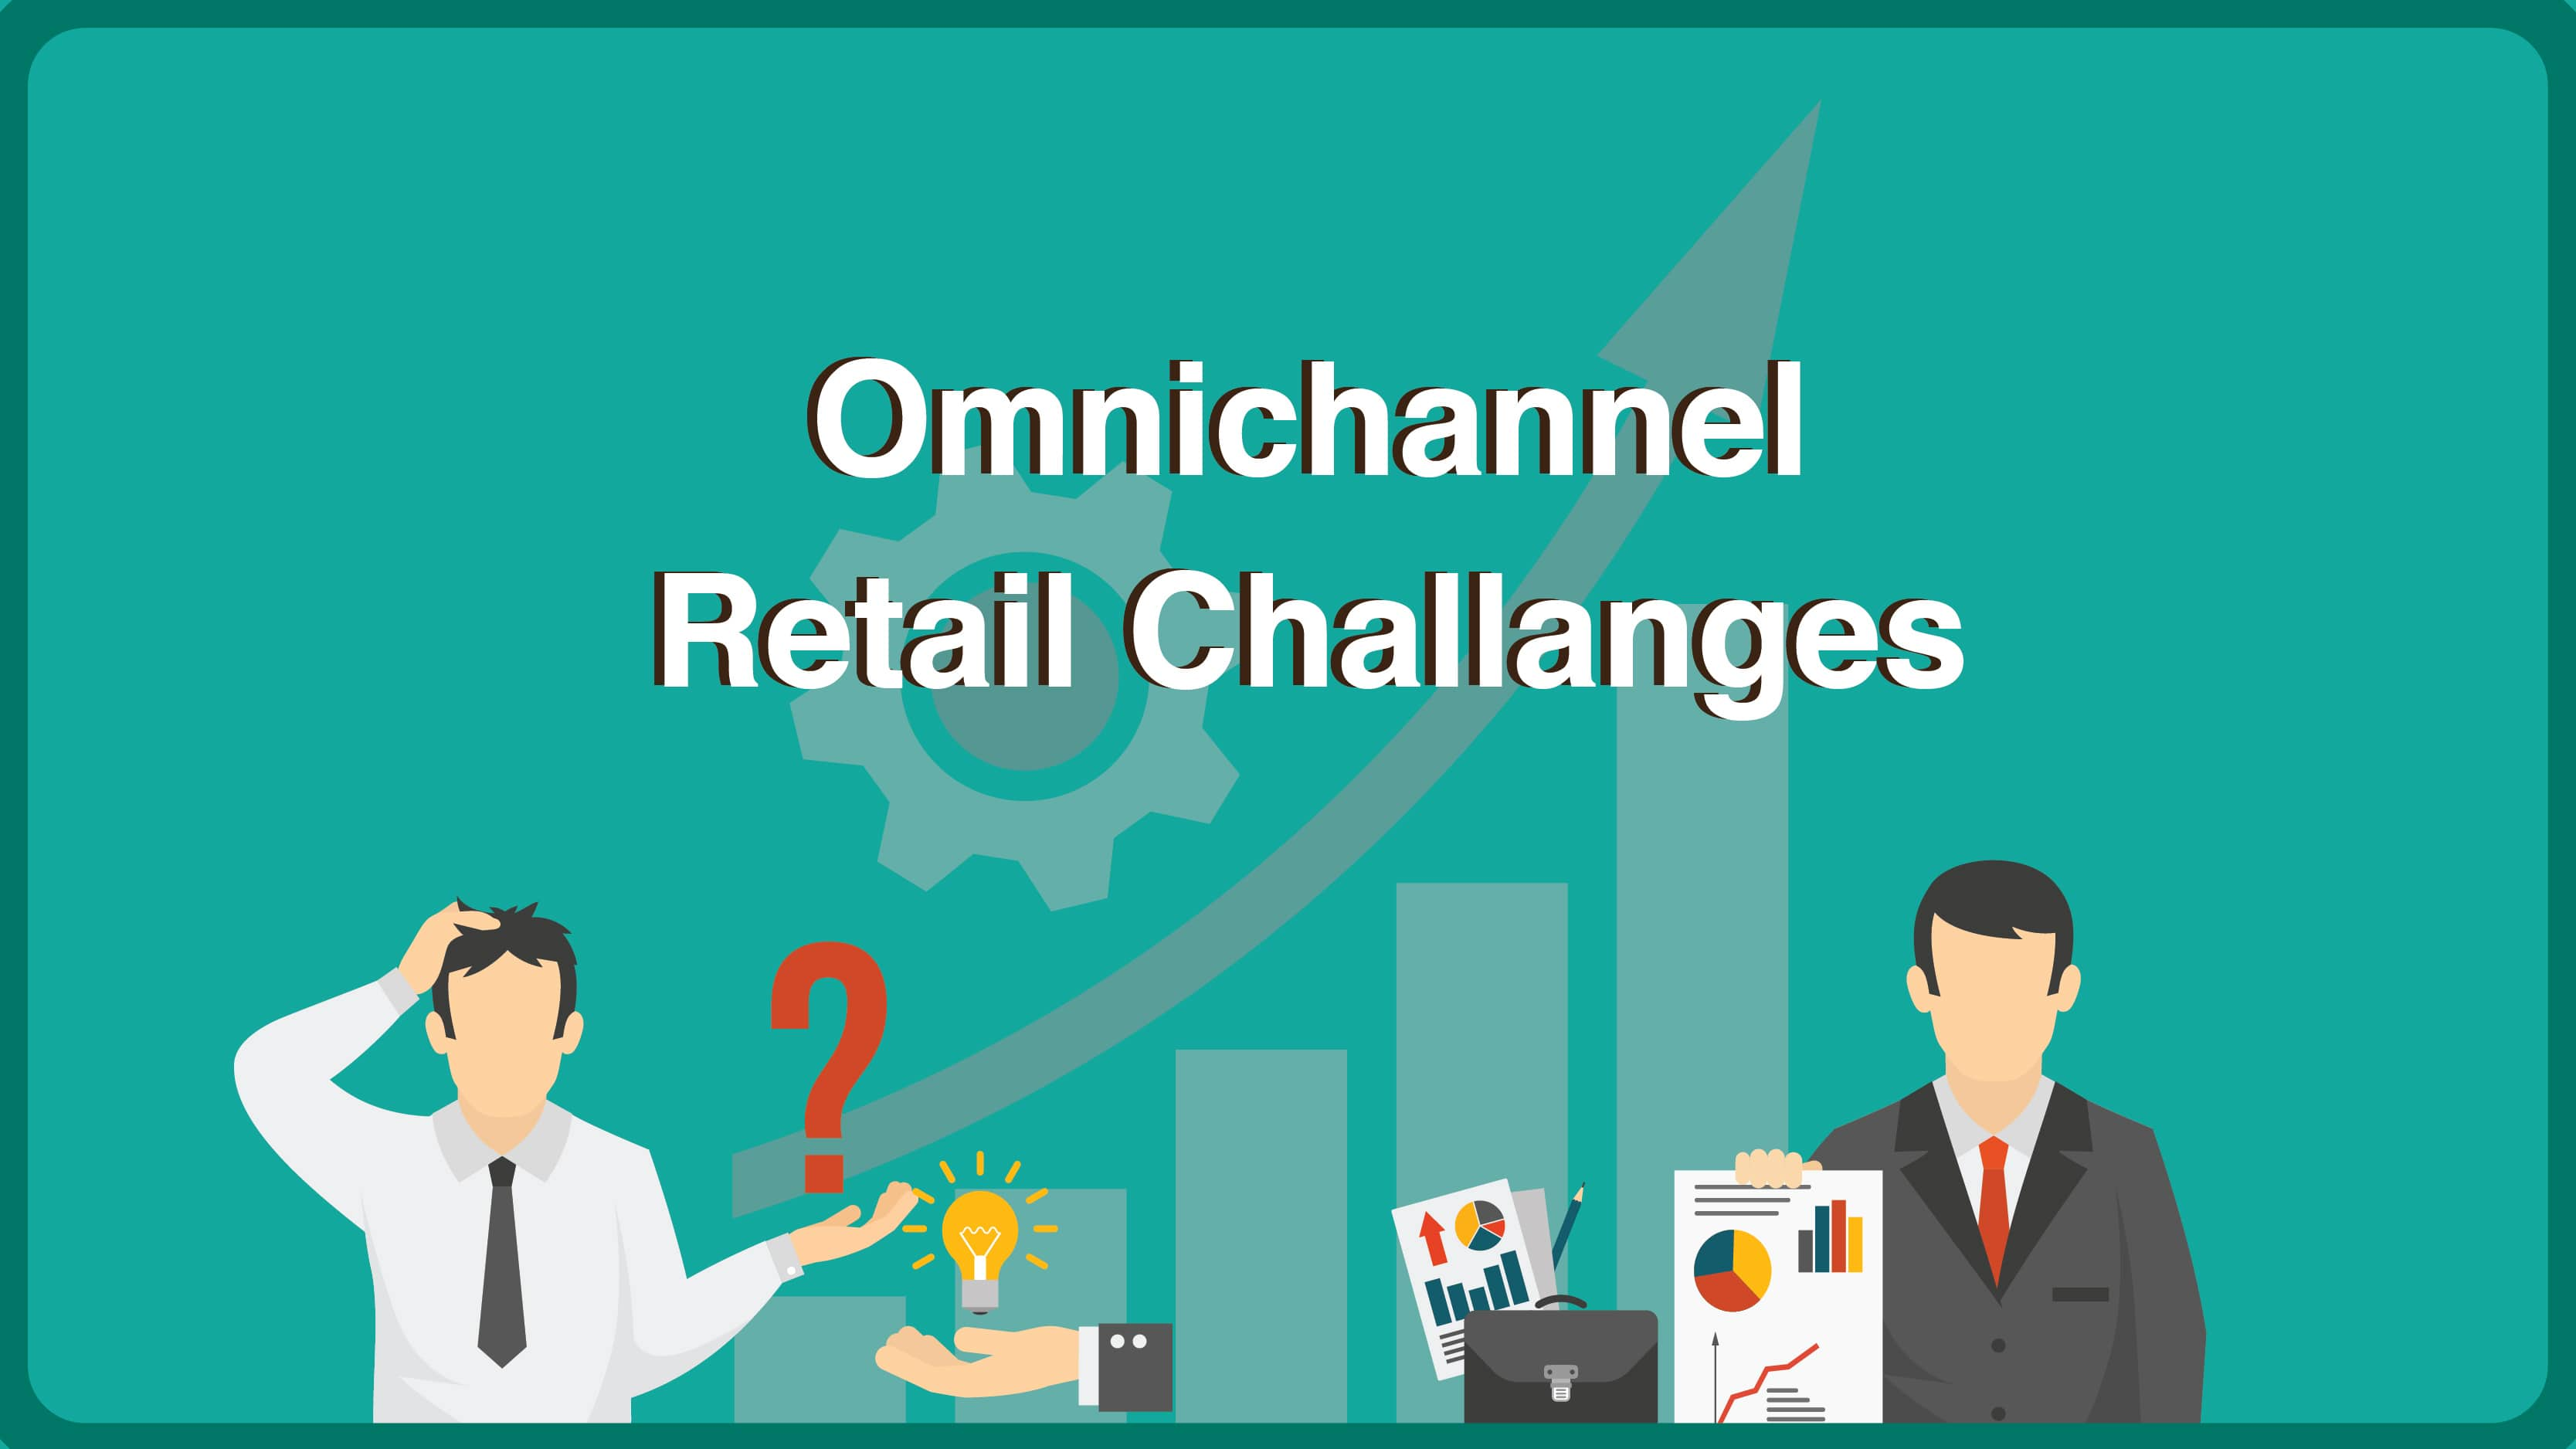 Omnichannel Retail Challanges